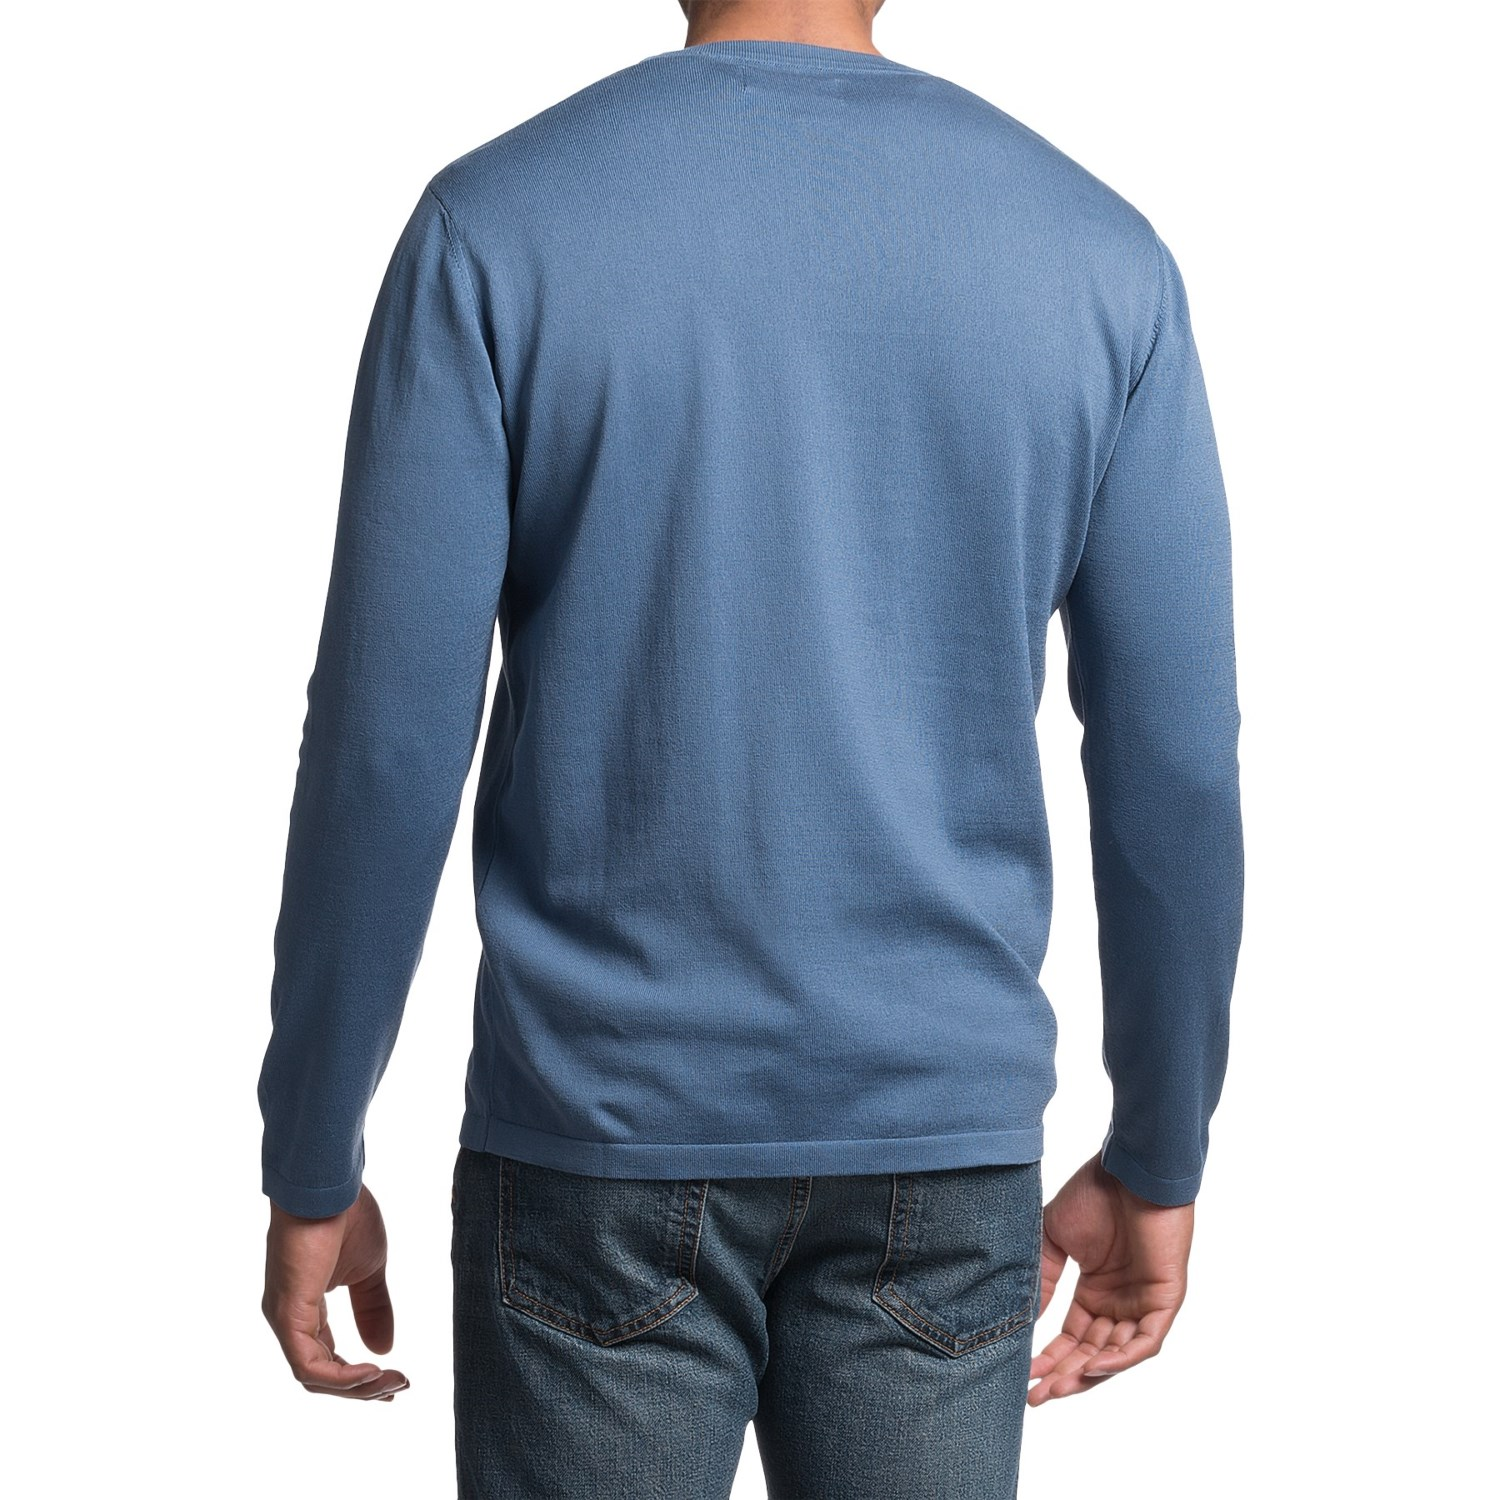 Men's Sweaters. Welcome to Novica's Men's Sweaters Collection. Add global flair to your wardrobe with a cardigan or pullover that has been handcrafted just for you by artisans worldwide.